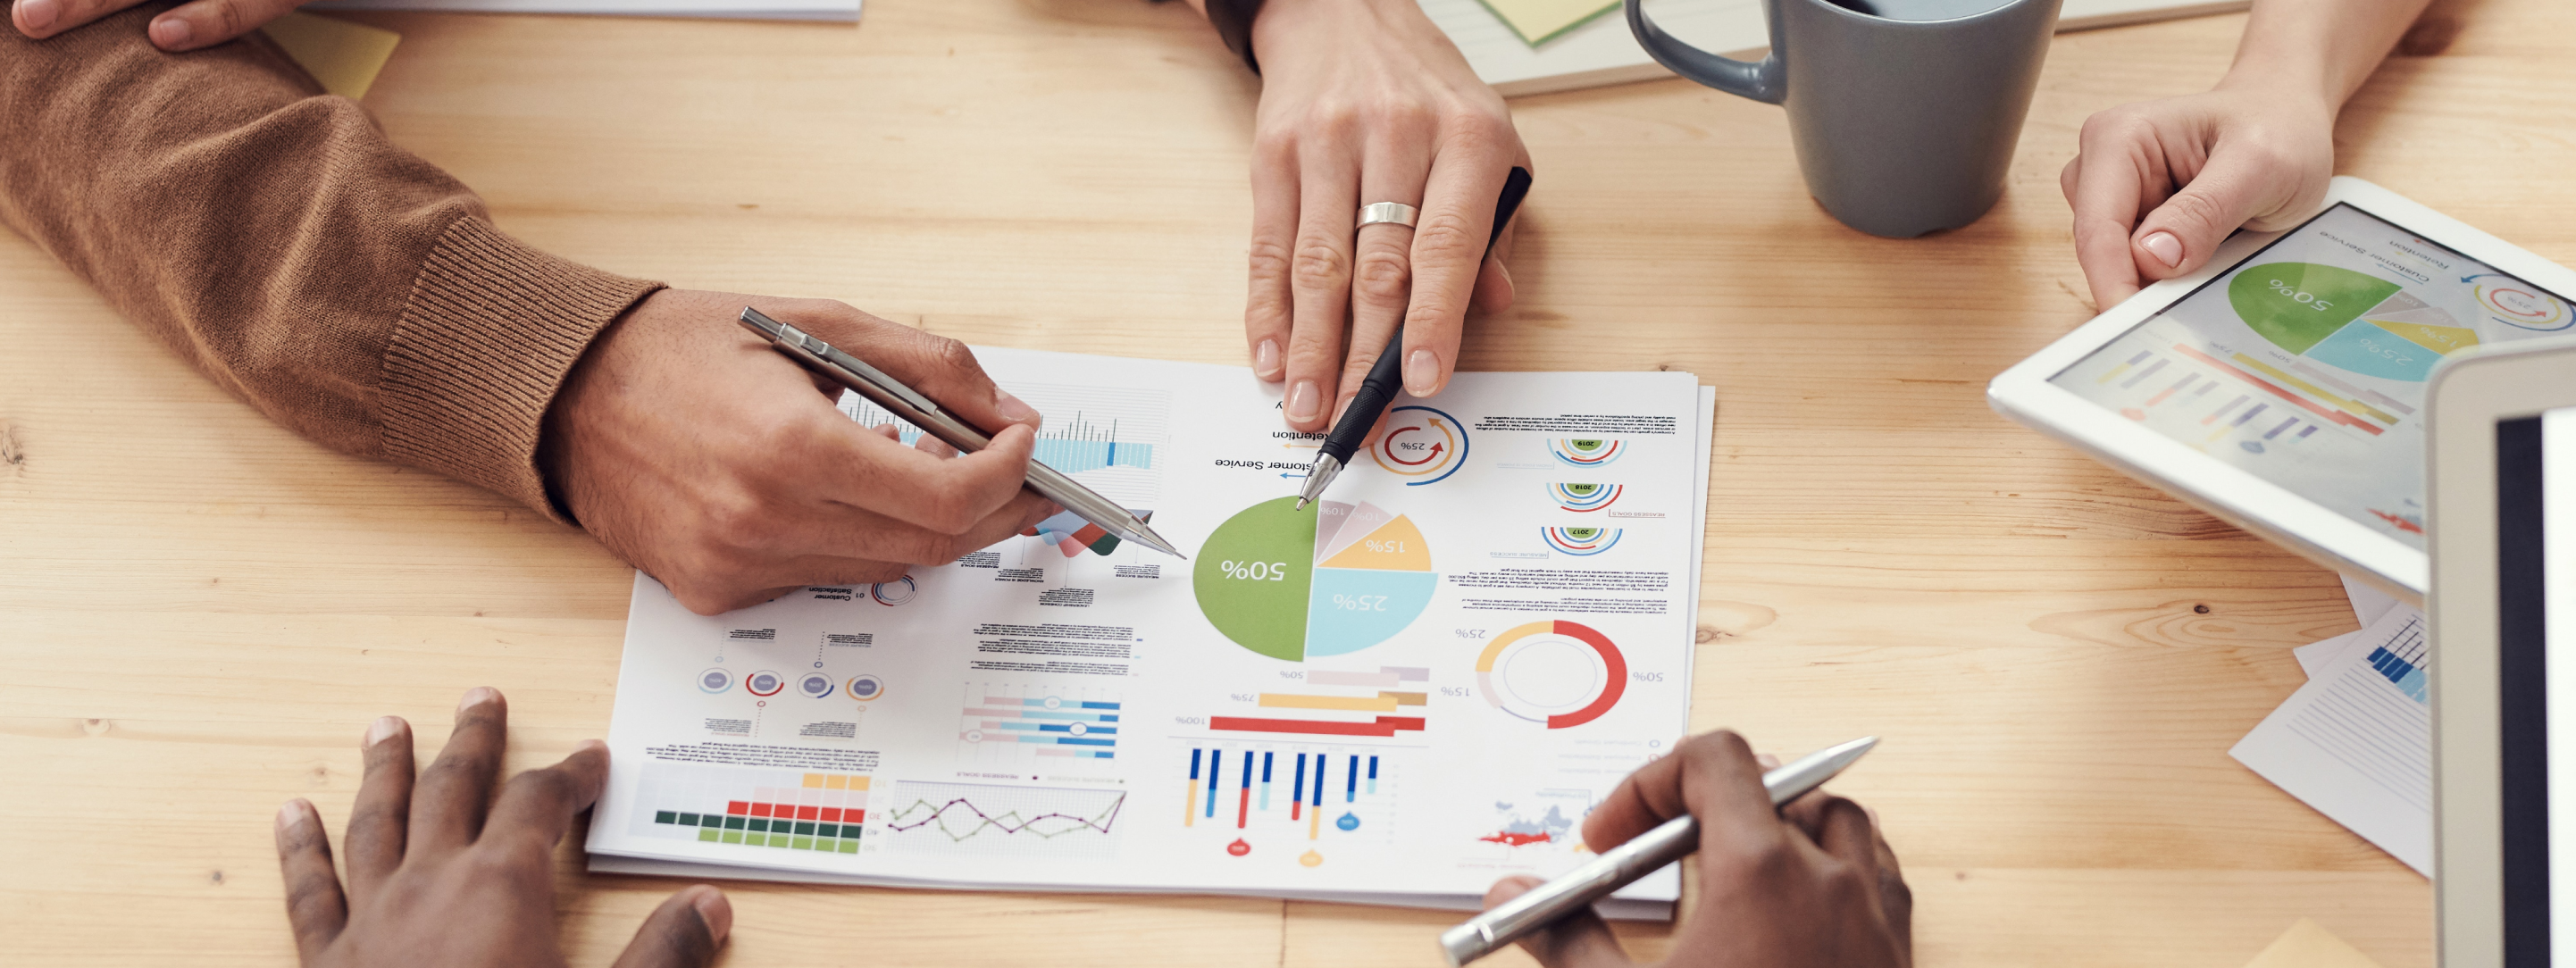 Improved operational reporting and analytic capabilities